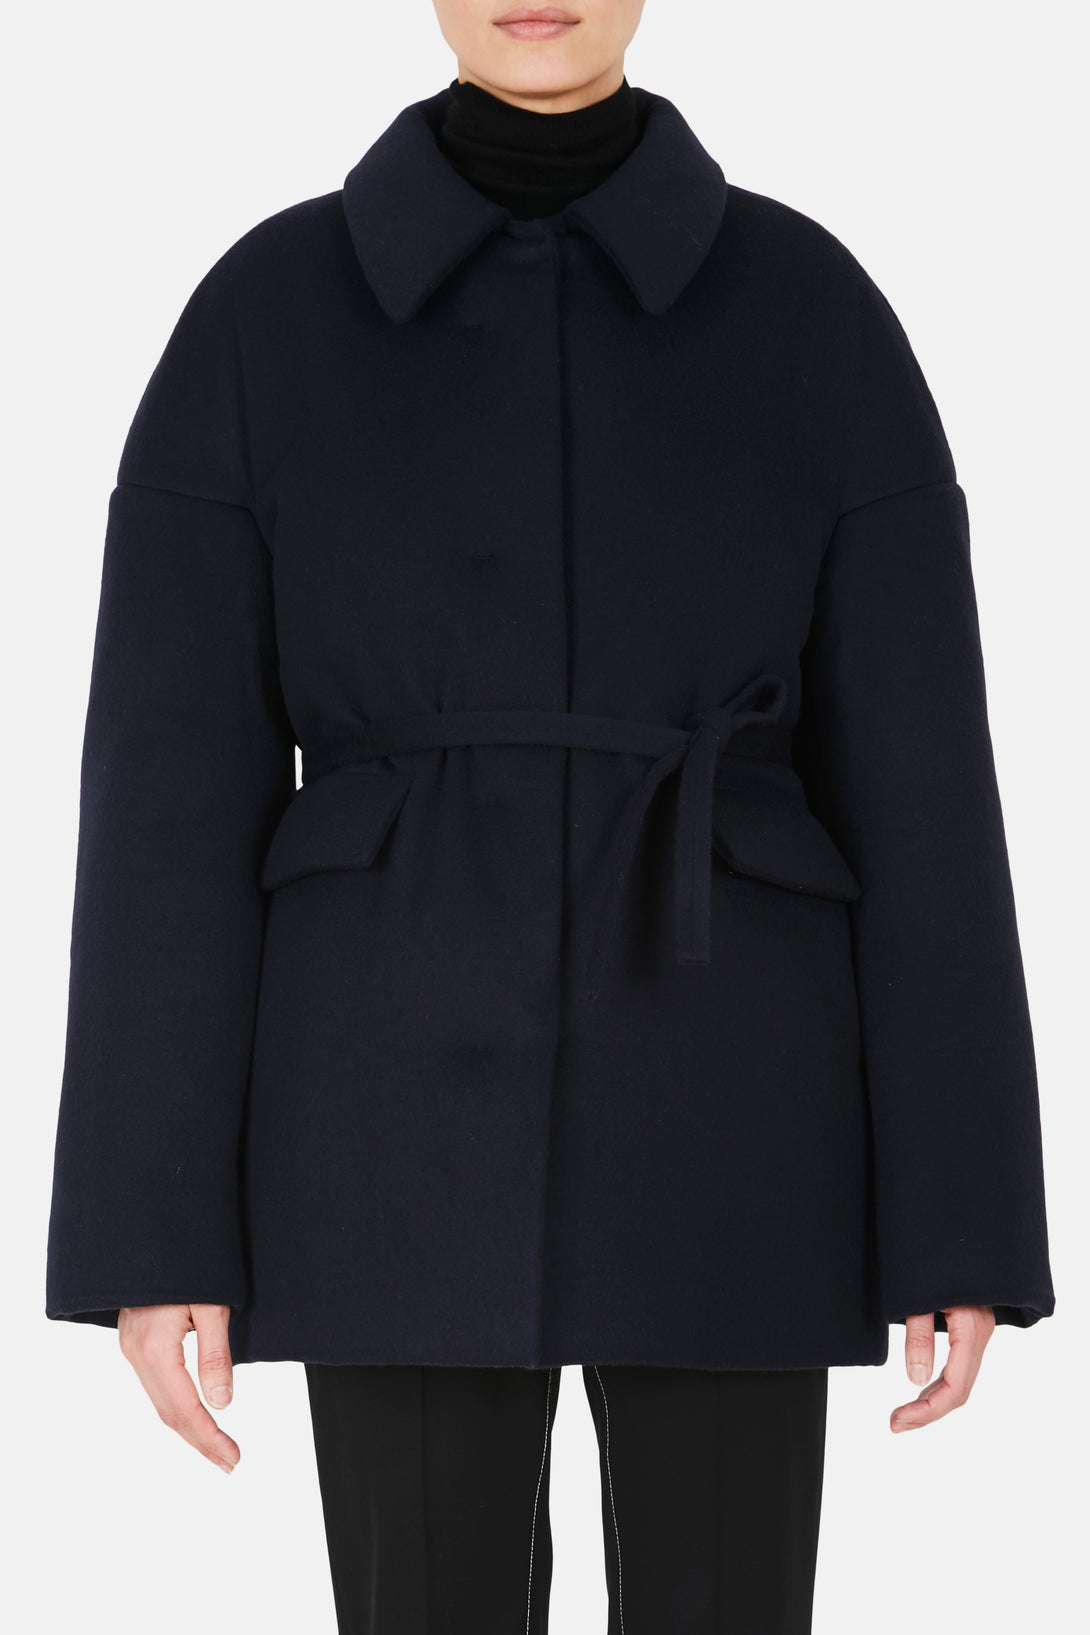 Drop Shoulder Puffer Coat - Navy